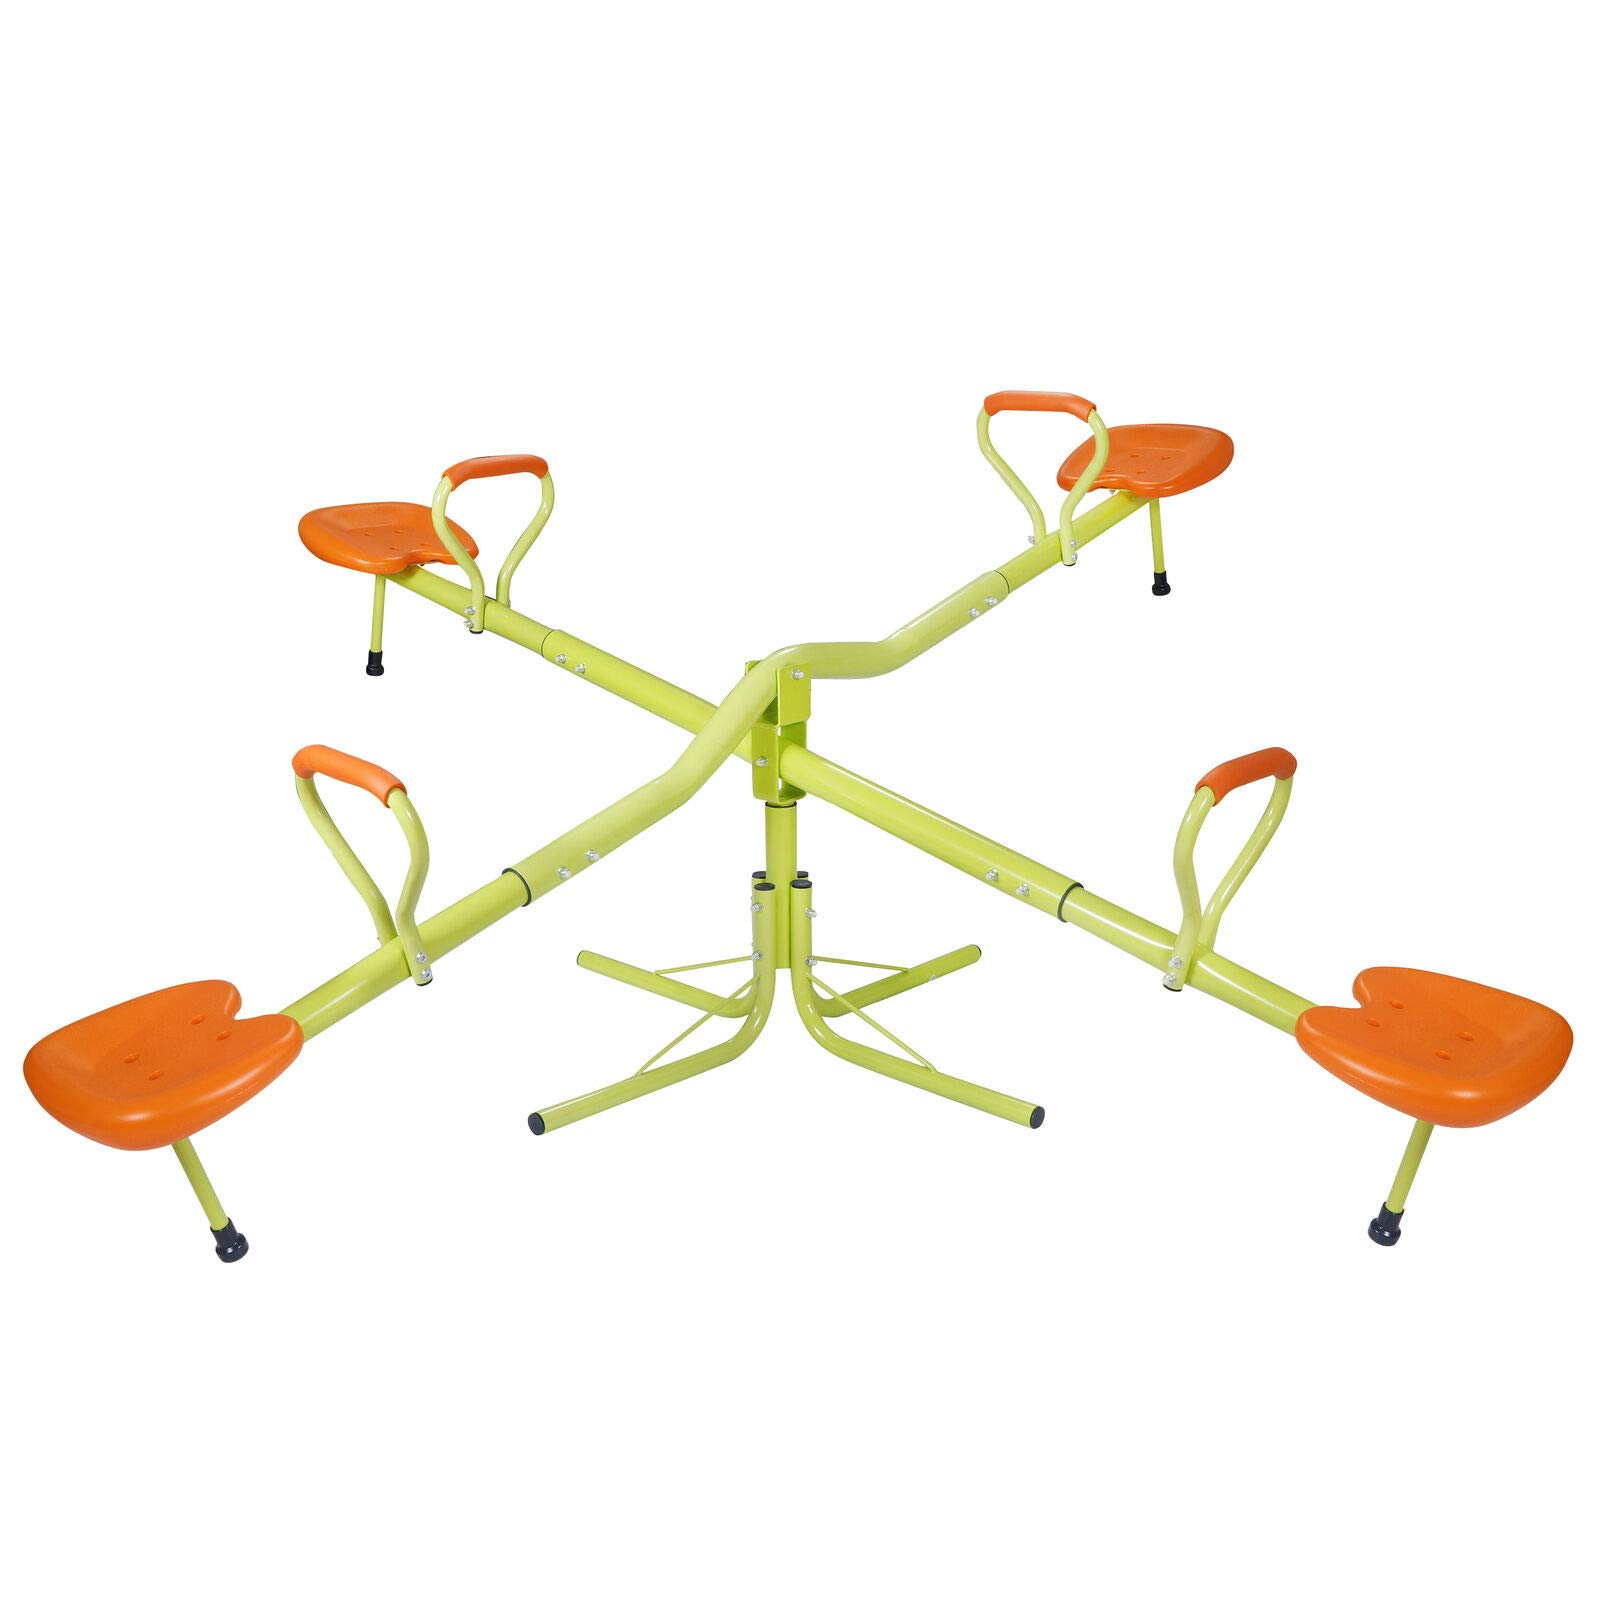 Outdoor Fun 360 Degree Spinning Seesaw for 2 or 4 Kids, Children Teeter-Totter Play Set, Playground Equipment Swivel Toys, Ages 3 - 9 by Kids' Teeter Totters